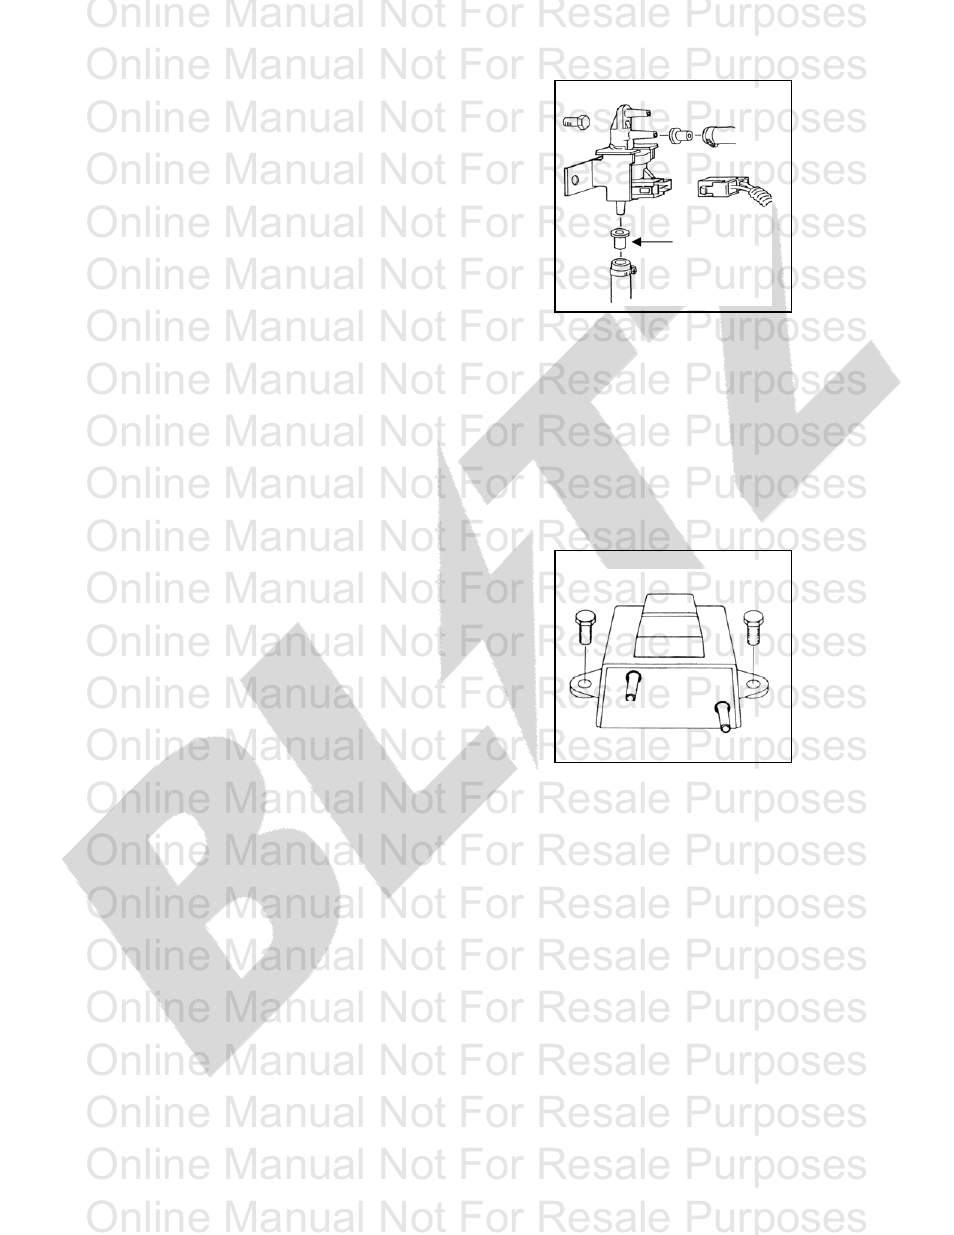 Online manual not for resale purposes | BLITZ Dual SBC Spec R & S User  Manual | Page 4 / 12